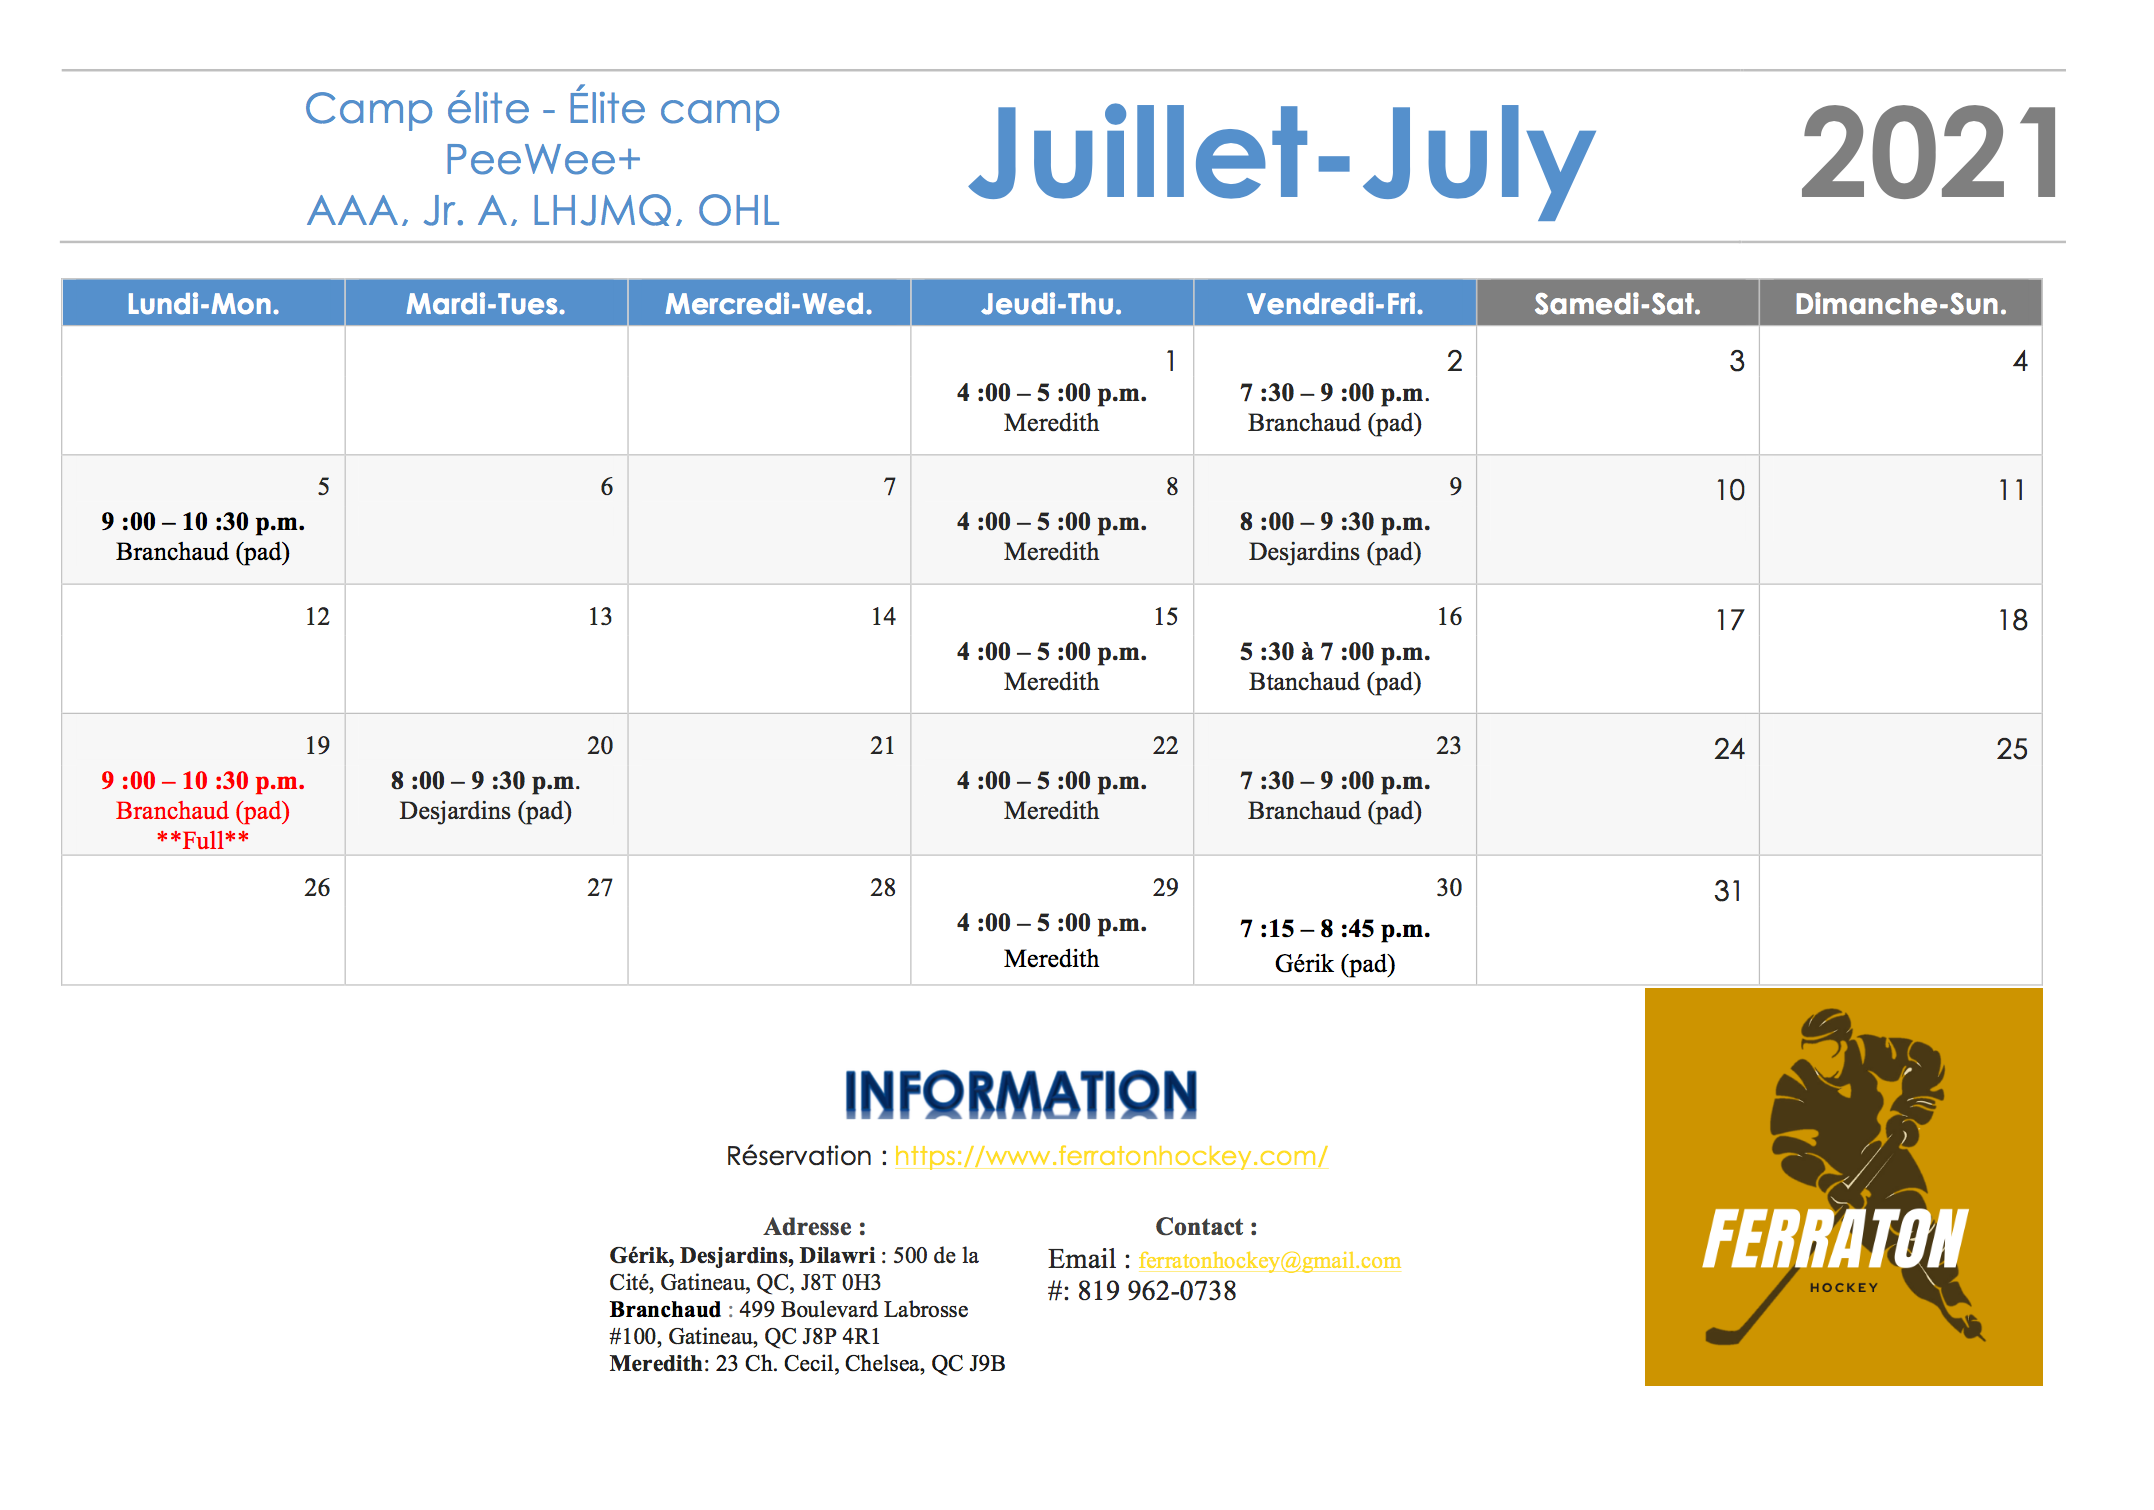 July sessions